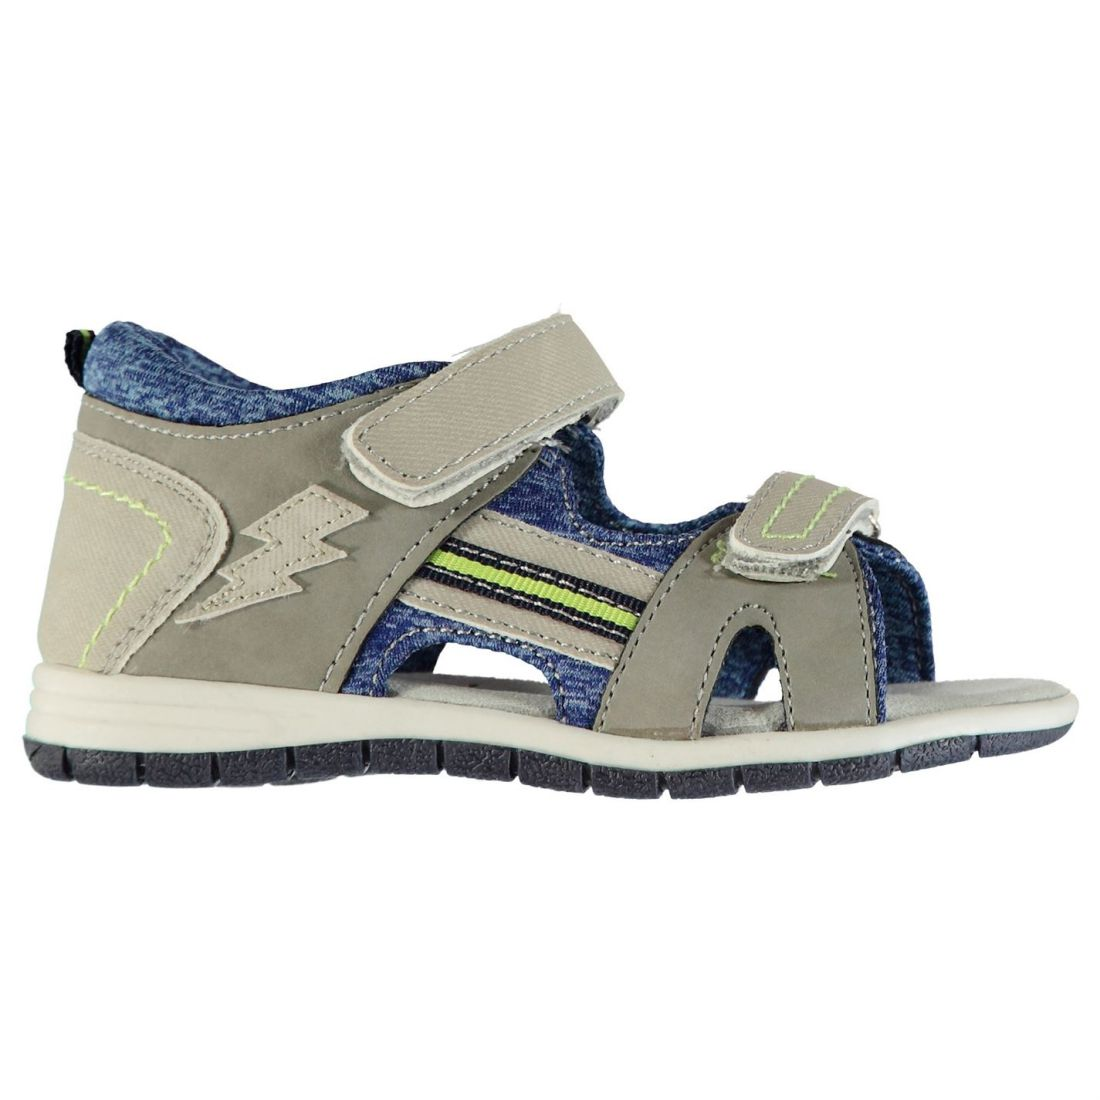 63b89e62a412 SoulCal Two Stripe Trek Sandals Infants Boys Flat Strap Touch and ...